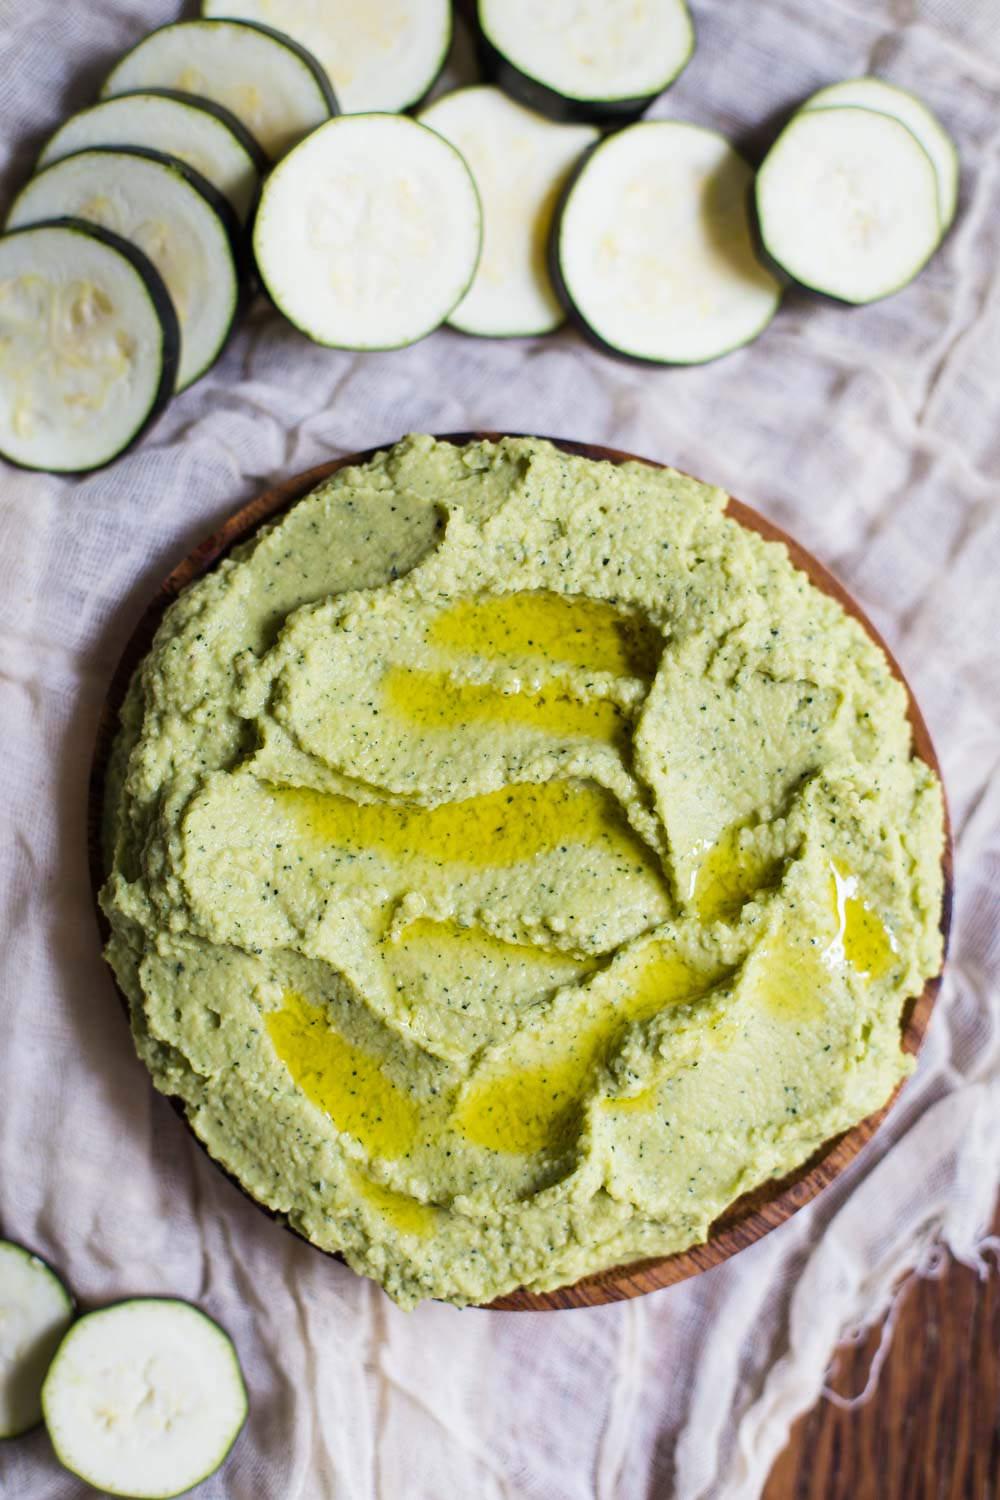 Zucchini Hummus- a quick and easy hummus recipe that's perfect for any snack, kid friendly, and a good way to get in more of those healthy greens!